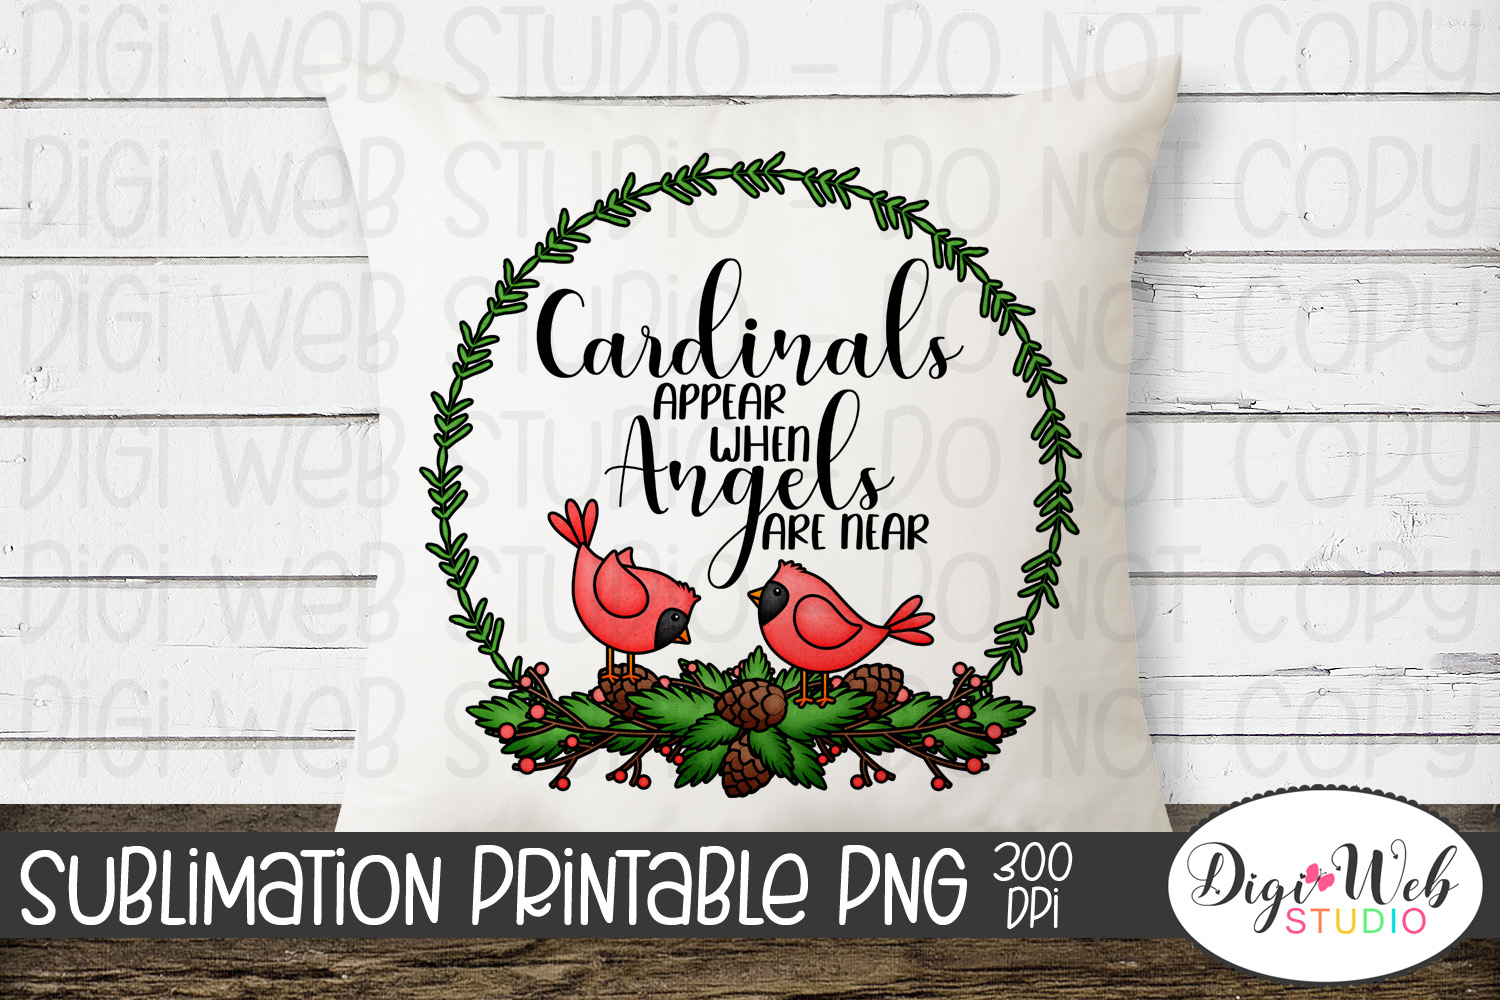 Crafters Sublimation Printable - Cardinals Appear When Angel example image 1